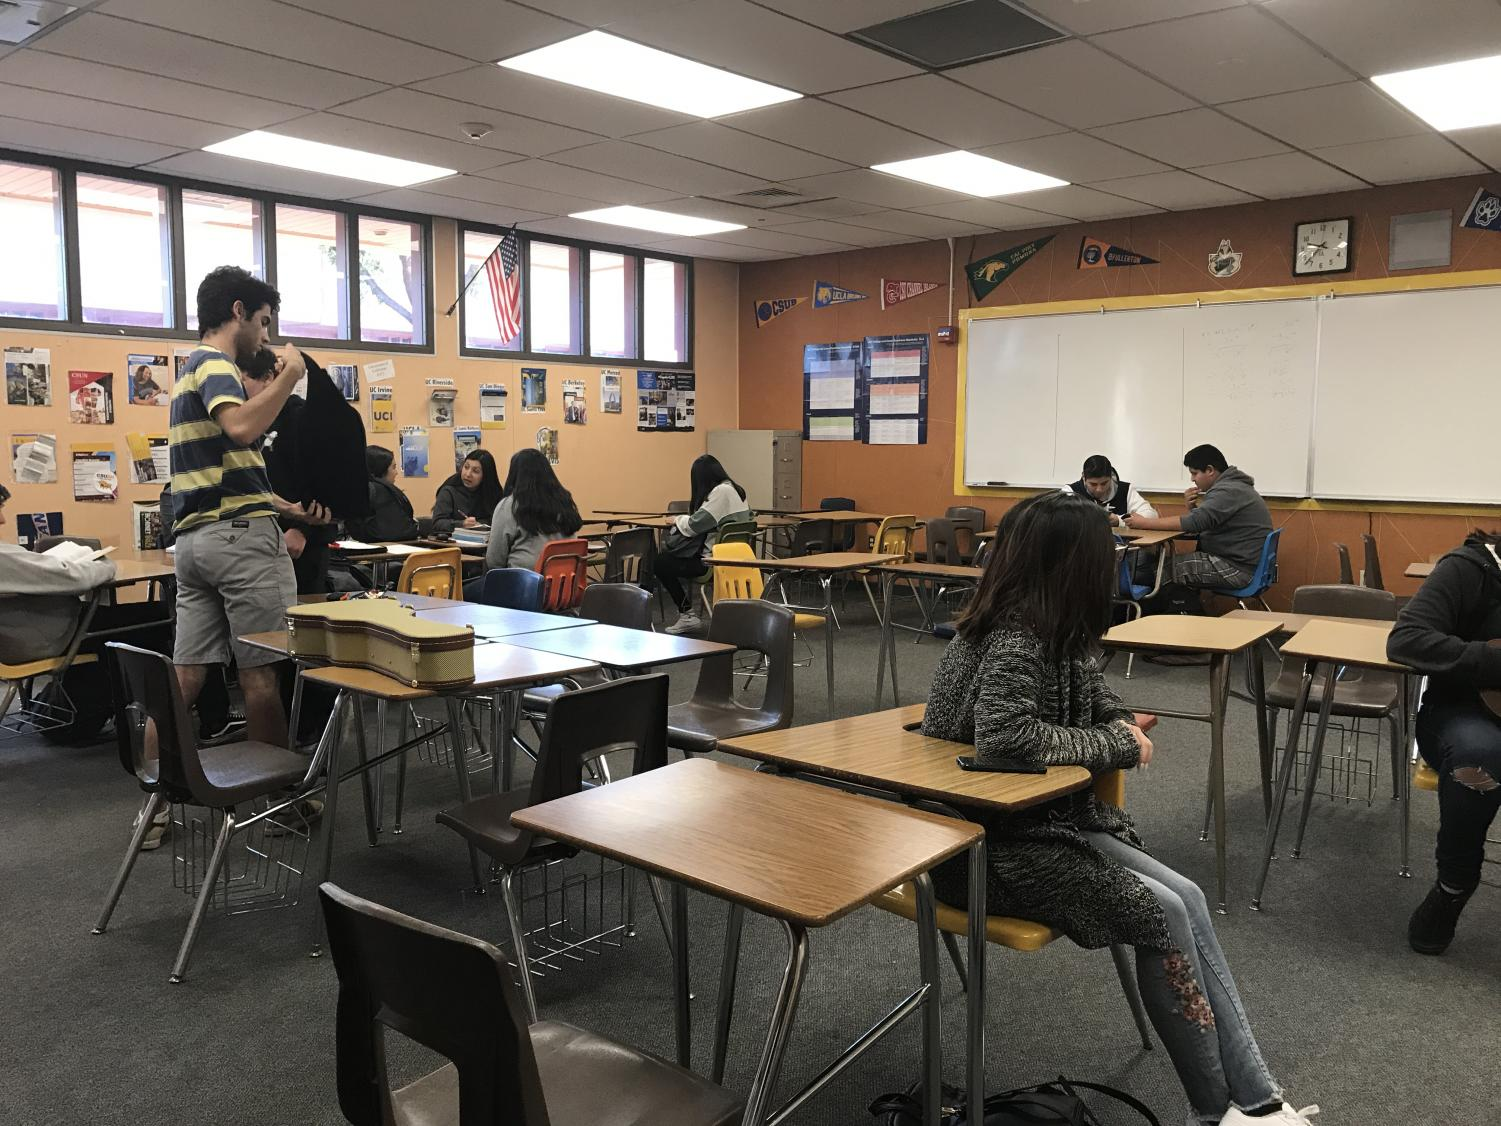 Inside the ETS room(105). Free tutoring occurs here Mondays-Thursdays from 2:30-4:30 pm. More information about ETS can also be found here.